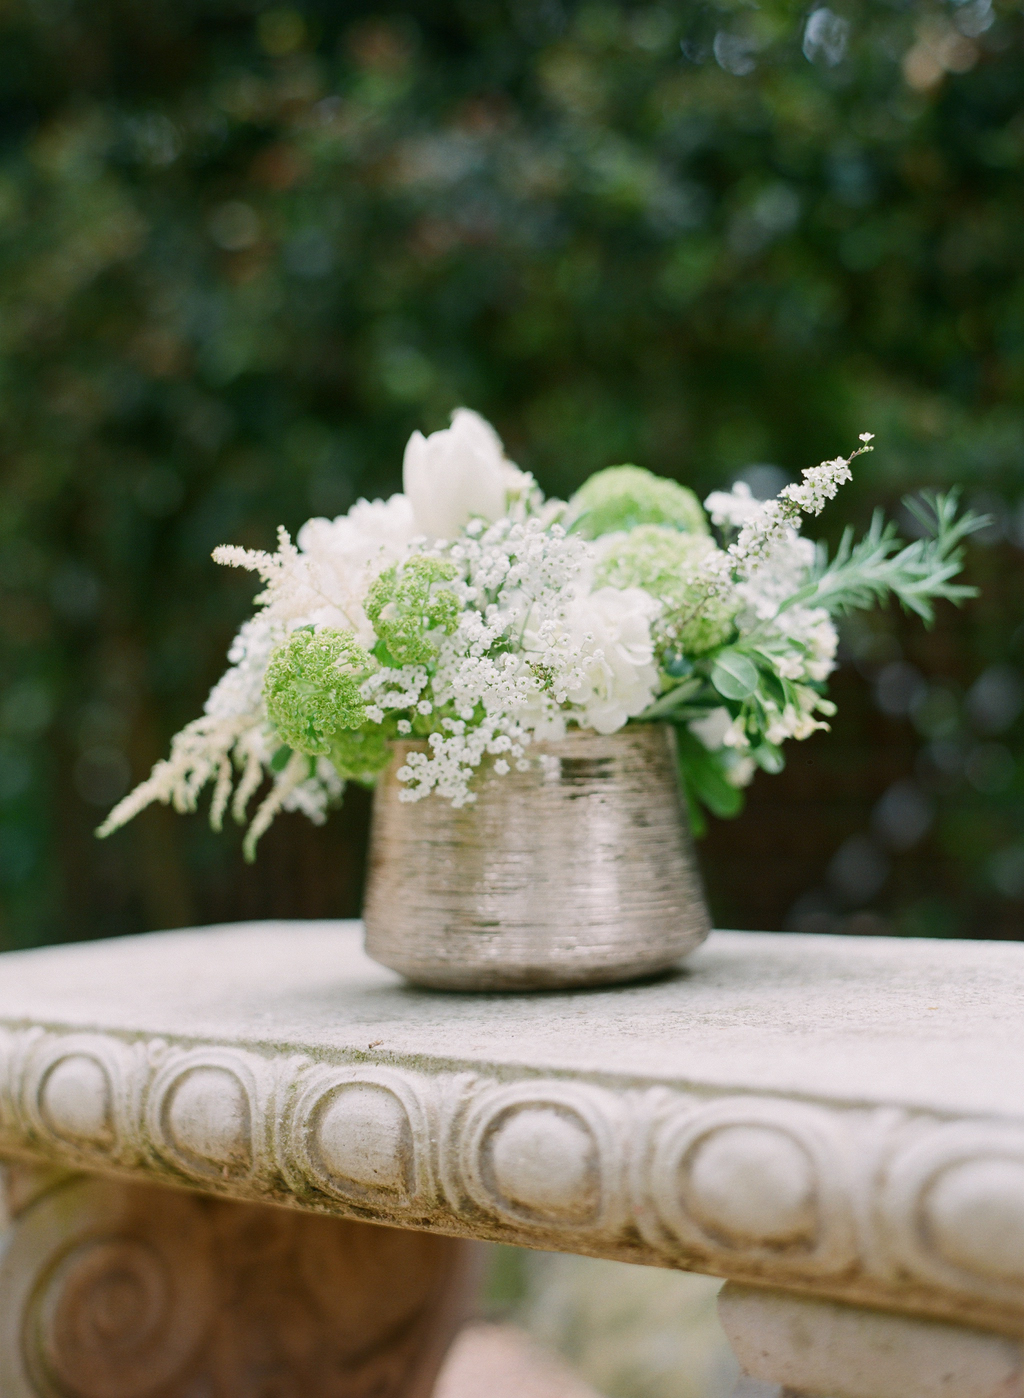 Styled-wedding-santa-barbara-chic-beaux-arts-photographie-italian-bohemian-wedding-flowers-white-bouquet-056.full